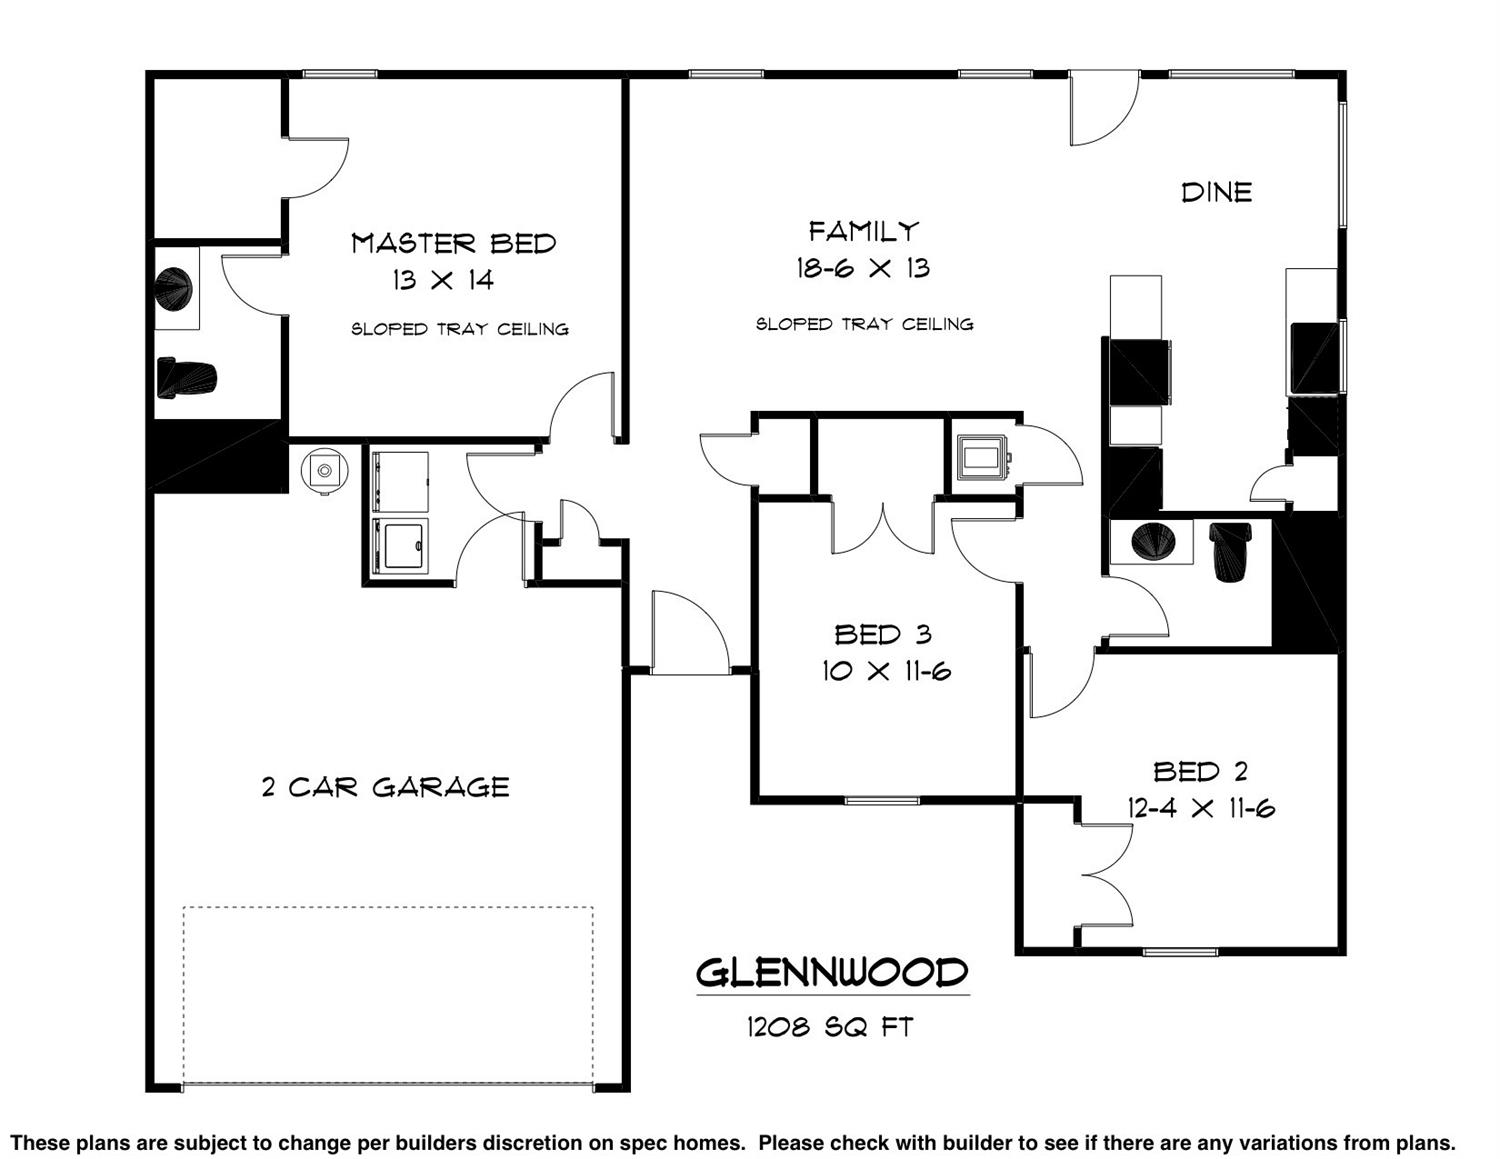 New%20Construction%20in%20the%20Colony.%20The%20Glenwood%20floorplan%20includes%20three%20bedrooms,%202%20baths,%20an%20attached%202%20car%20garage,%209%20ft%20ceilings%20and%20cherry%20cabinets.%20Welcome%20Home%20to%20the%20Colony!!